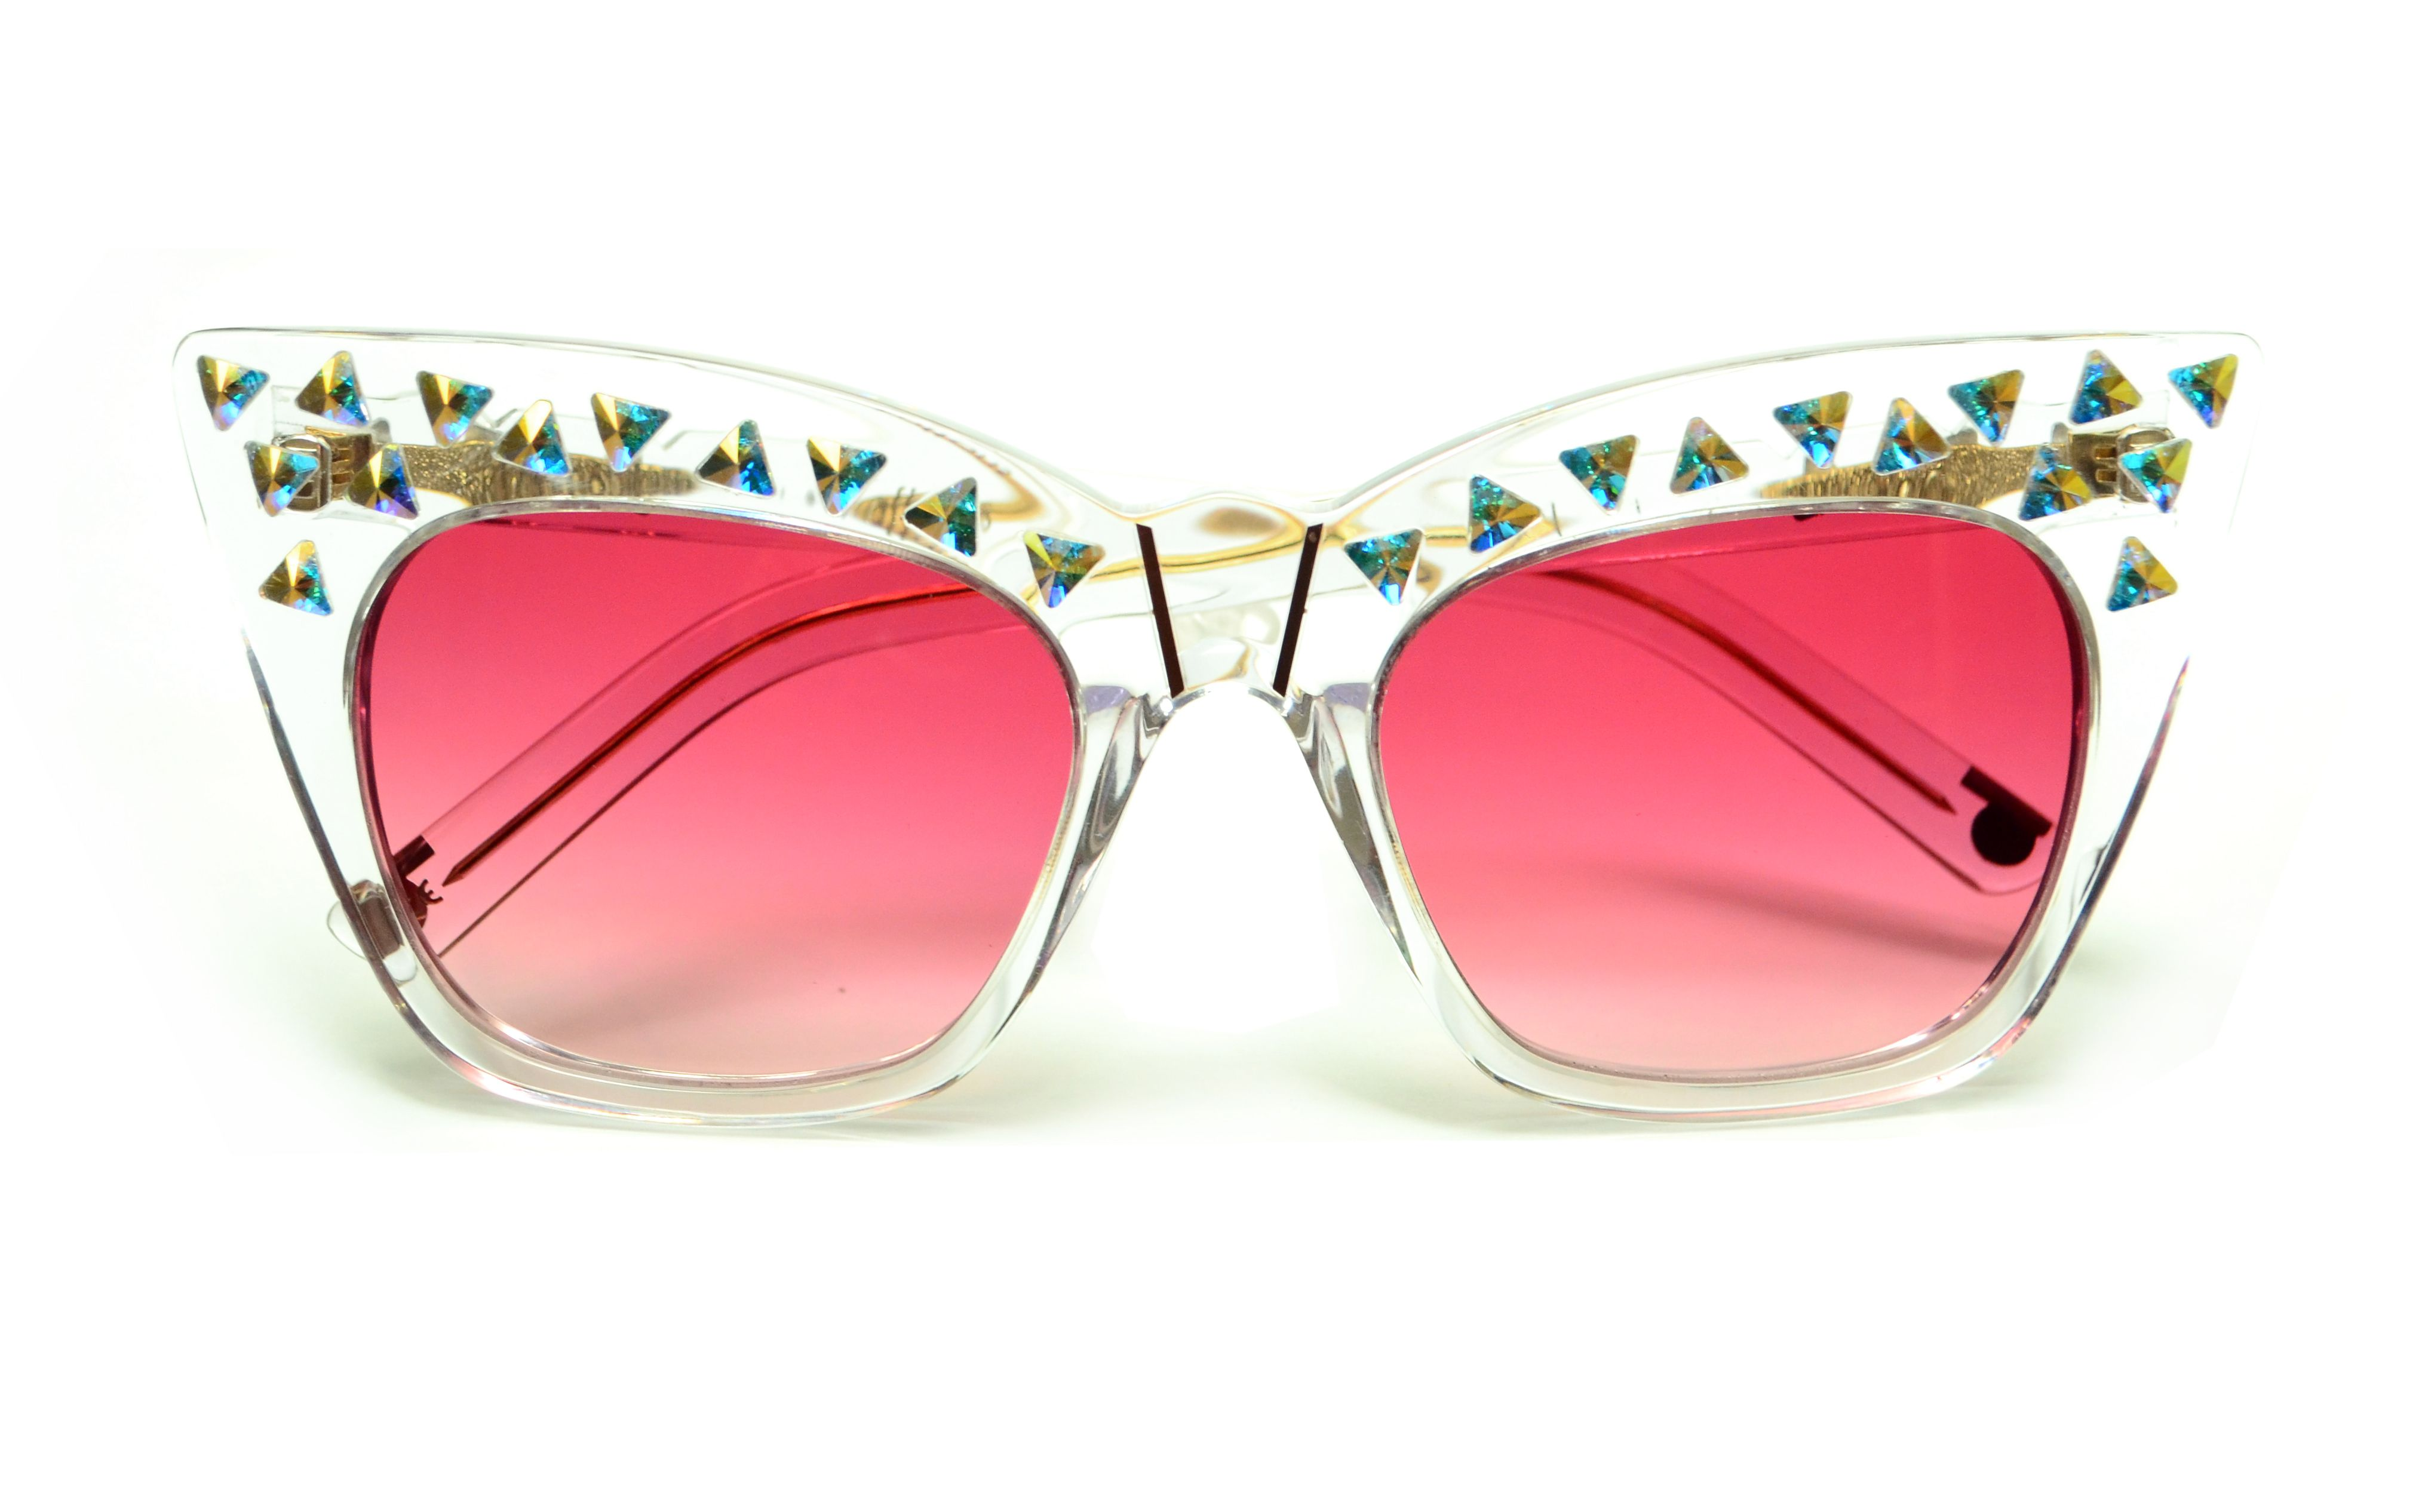 Kohl Kaftans Clear With Swarovski Crystals Pink Grant Lenses